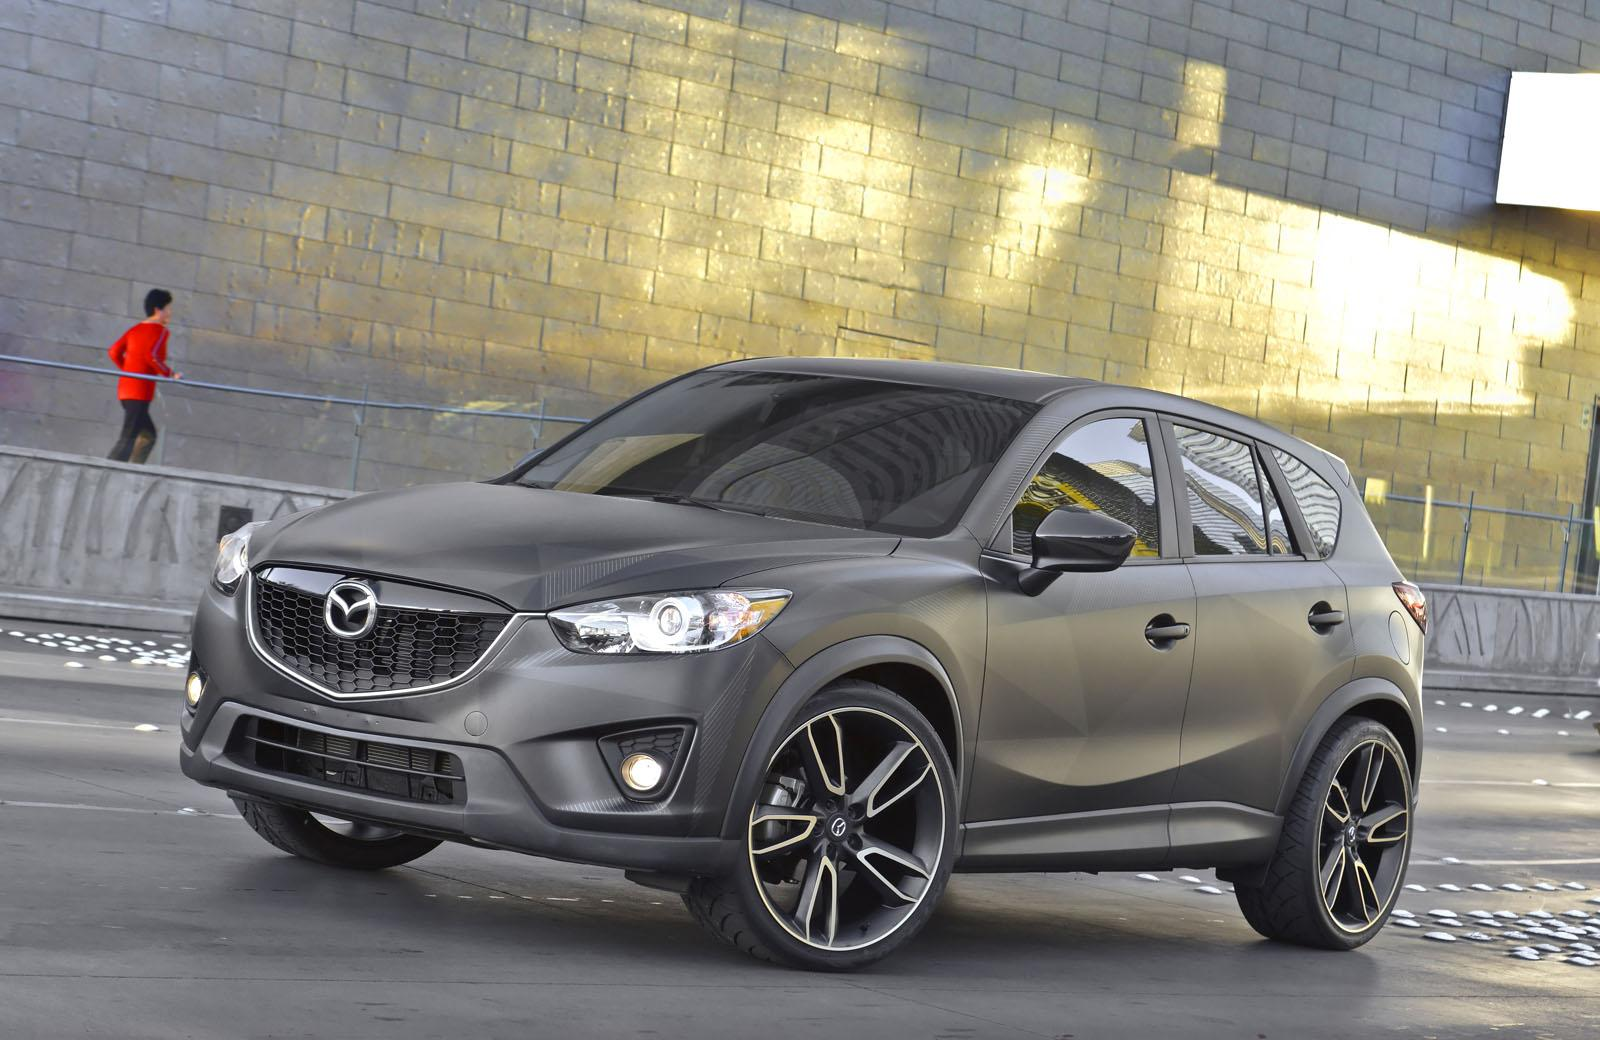 https://s1.cdn.autoevolution.com/images/news/gallery/mazda-cx-5-urban-presented-at-2012-sema-photo-gallery_2.jpg